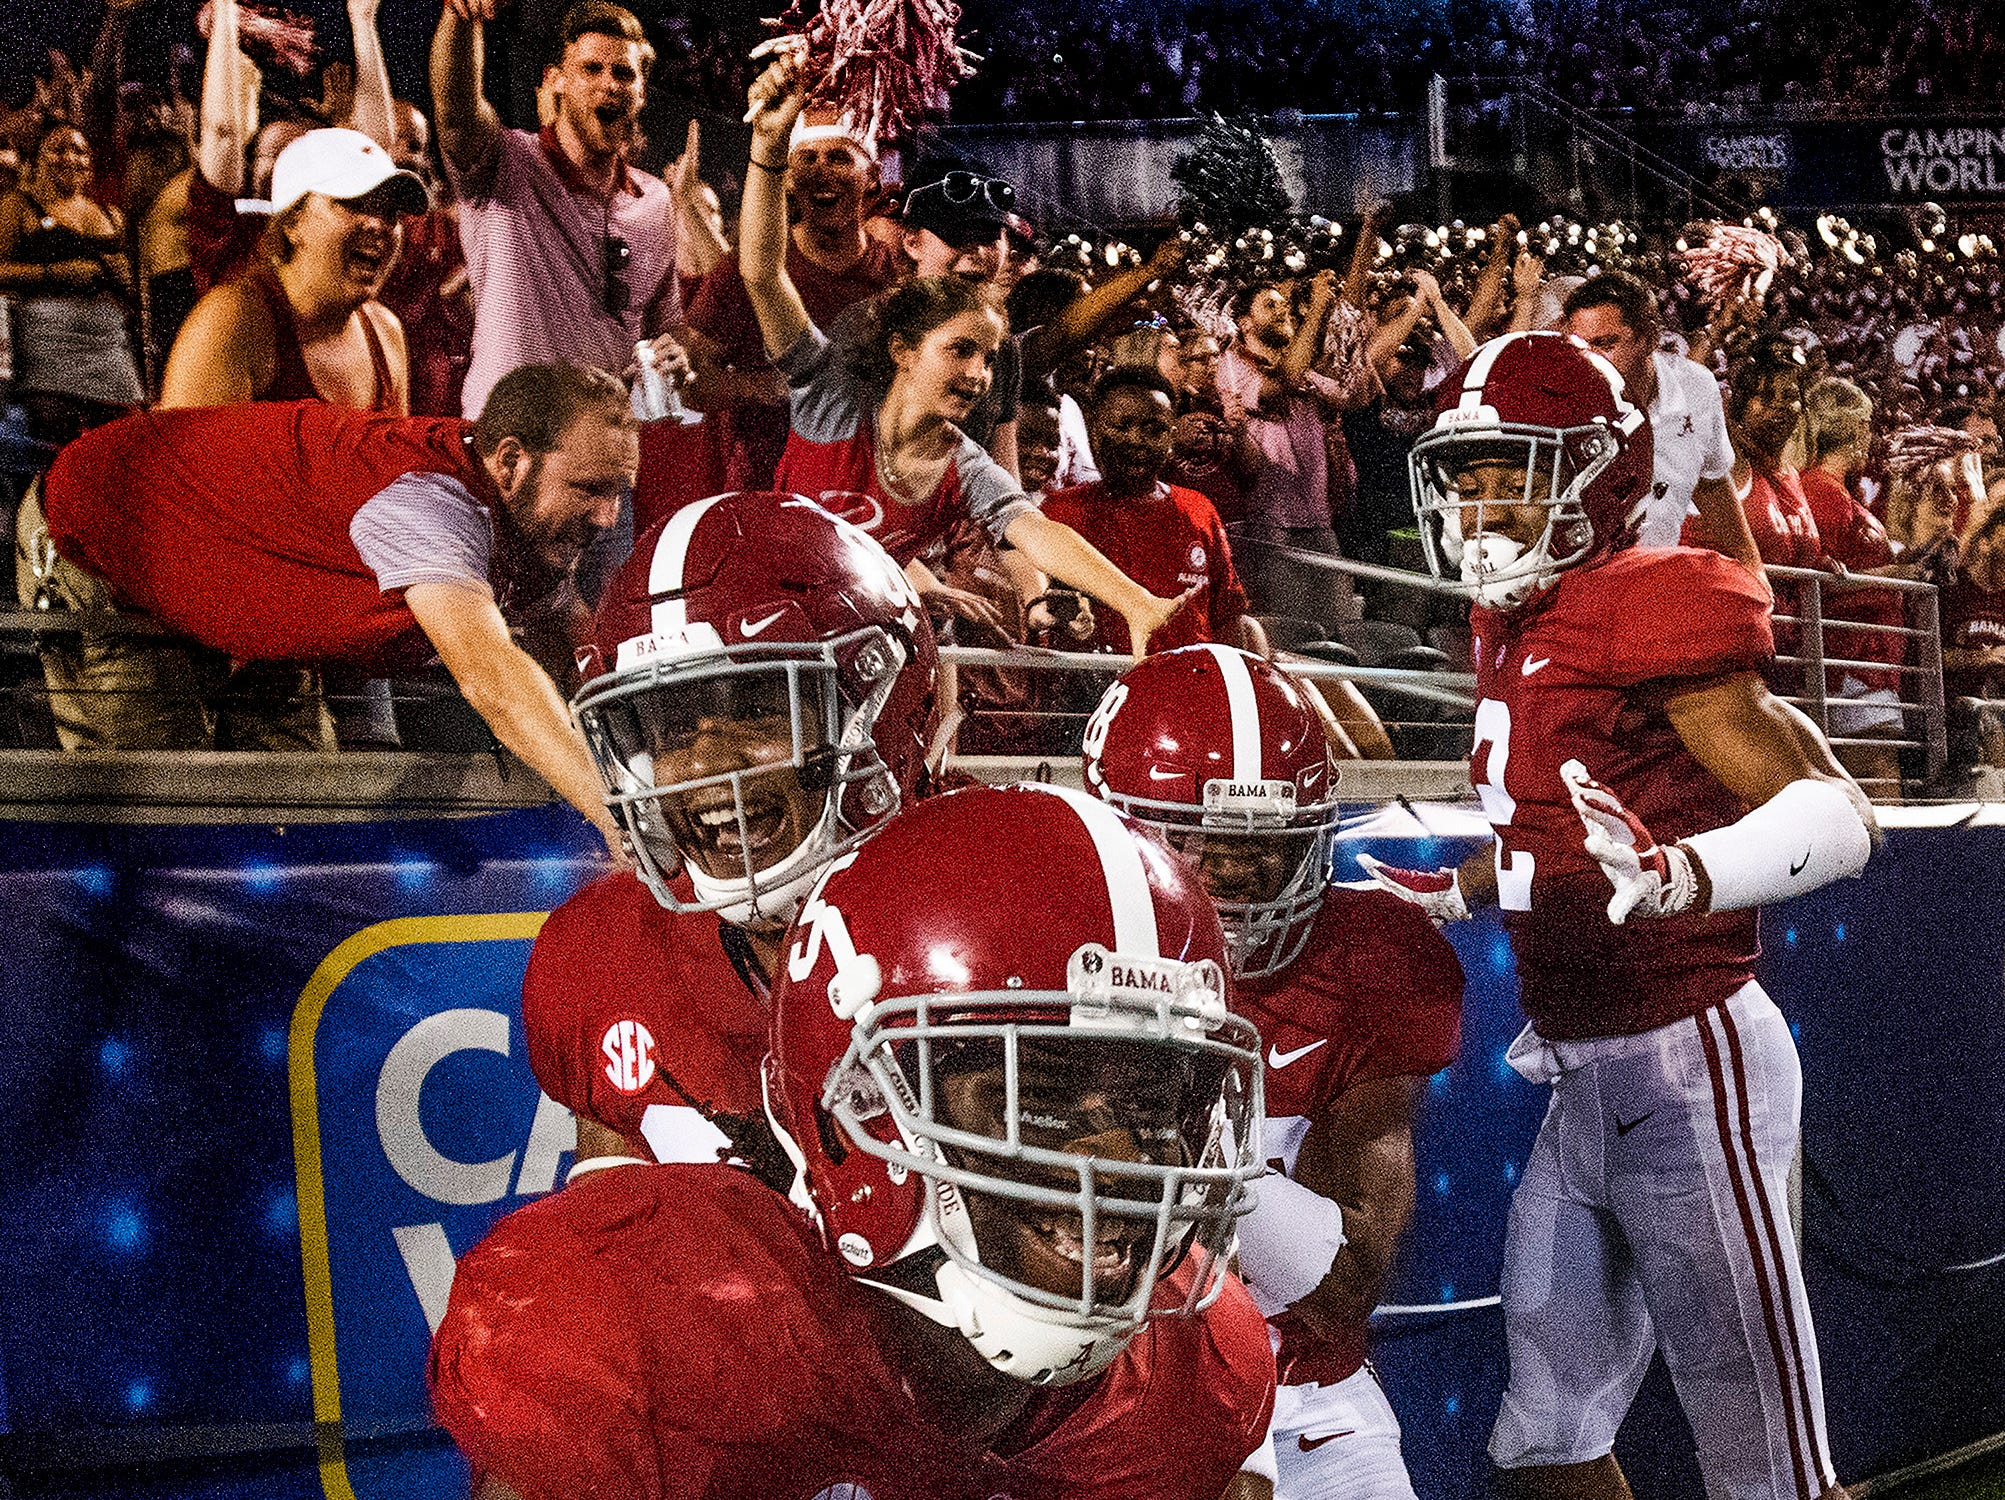 Alabama defensive back Shyheim Carter (5) celebrates with teammates and fans after intercepting a pass and returning it for a touchdown against Louisville In second half action of the Camping World Kickoff at Camping World Stadium in Orlando, Fla., on Saturday September 1, 2018.